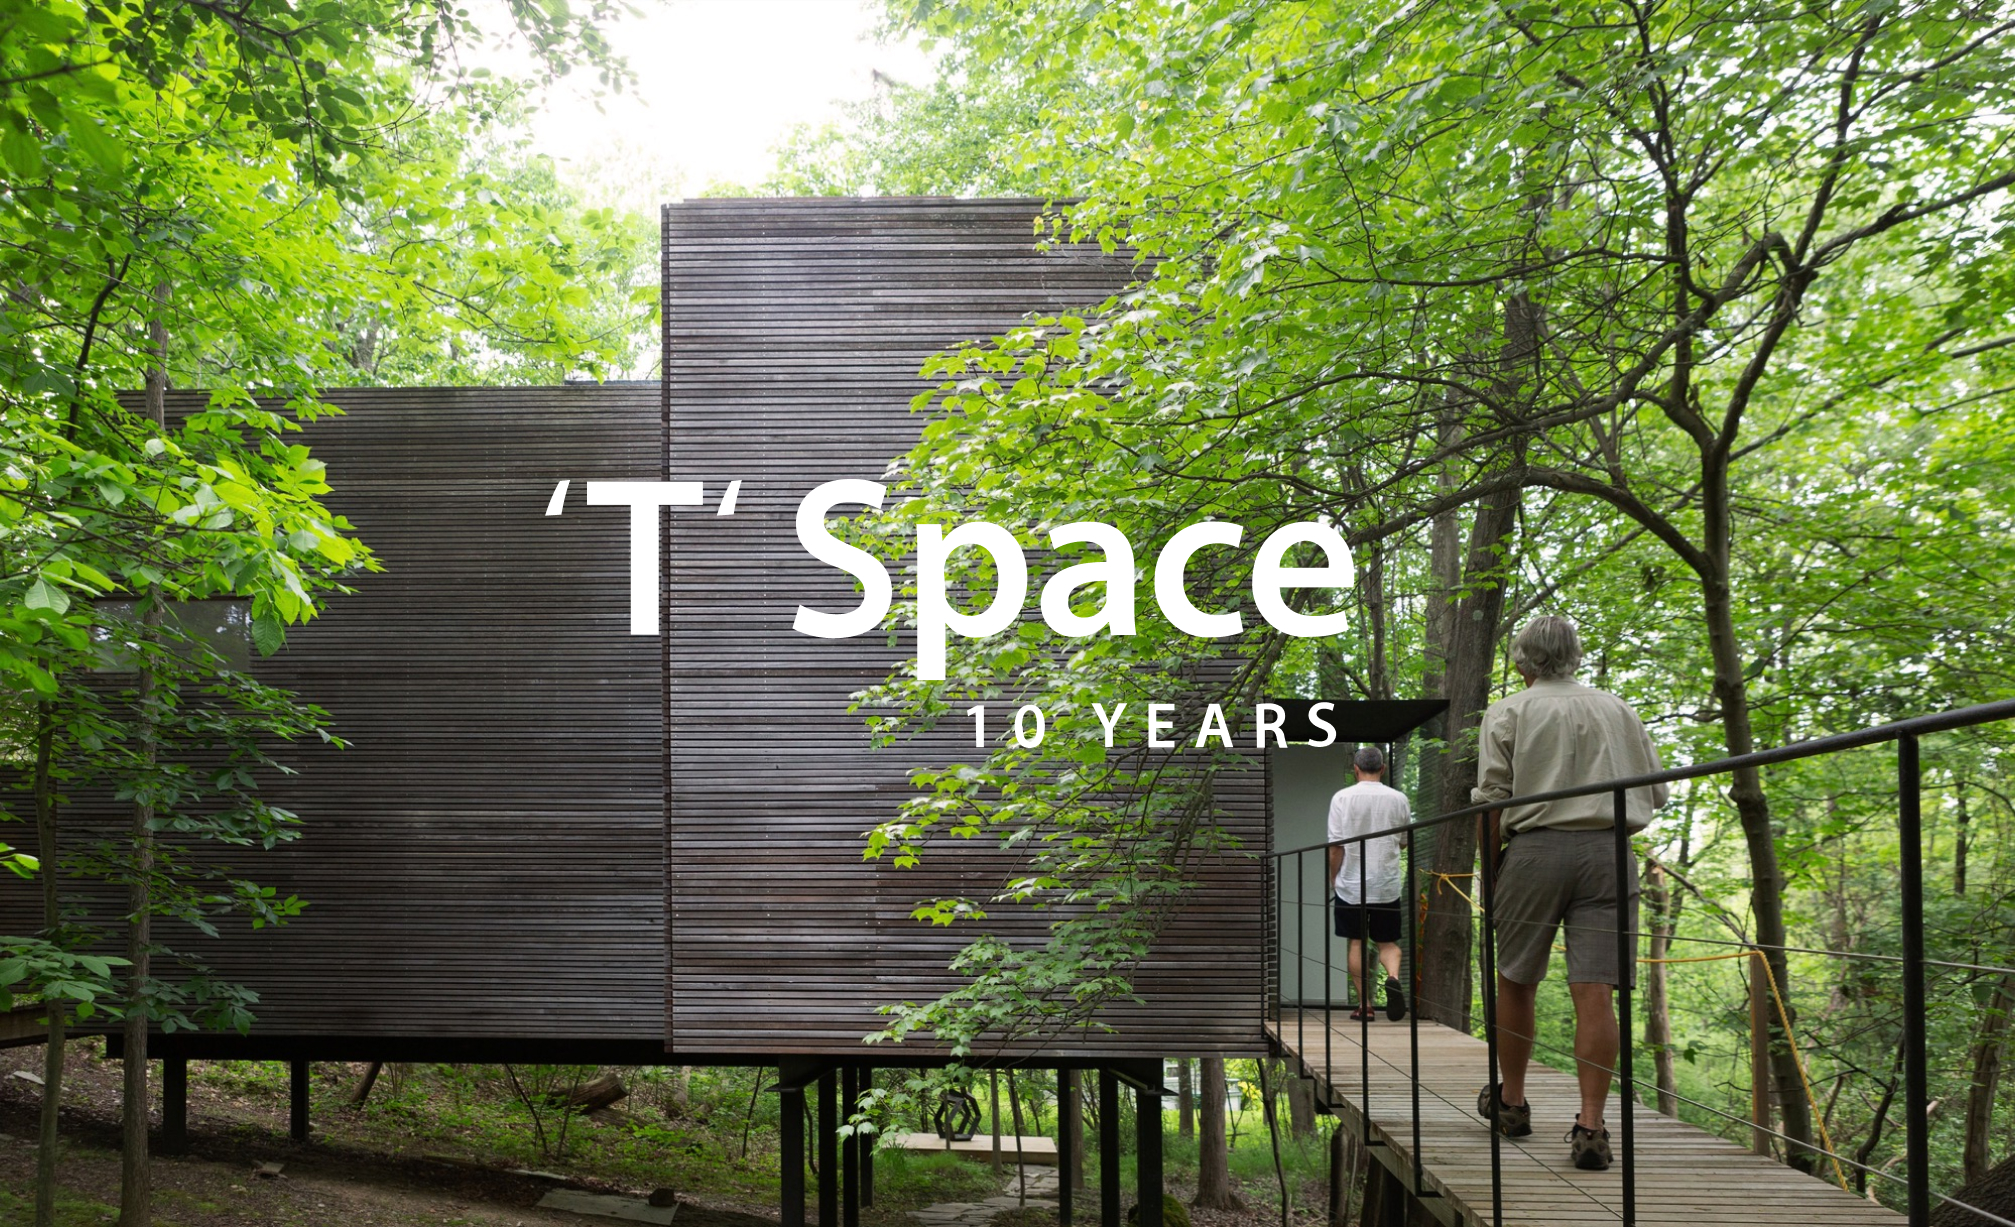 Explore 10 Years at 'T' Space